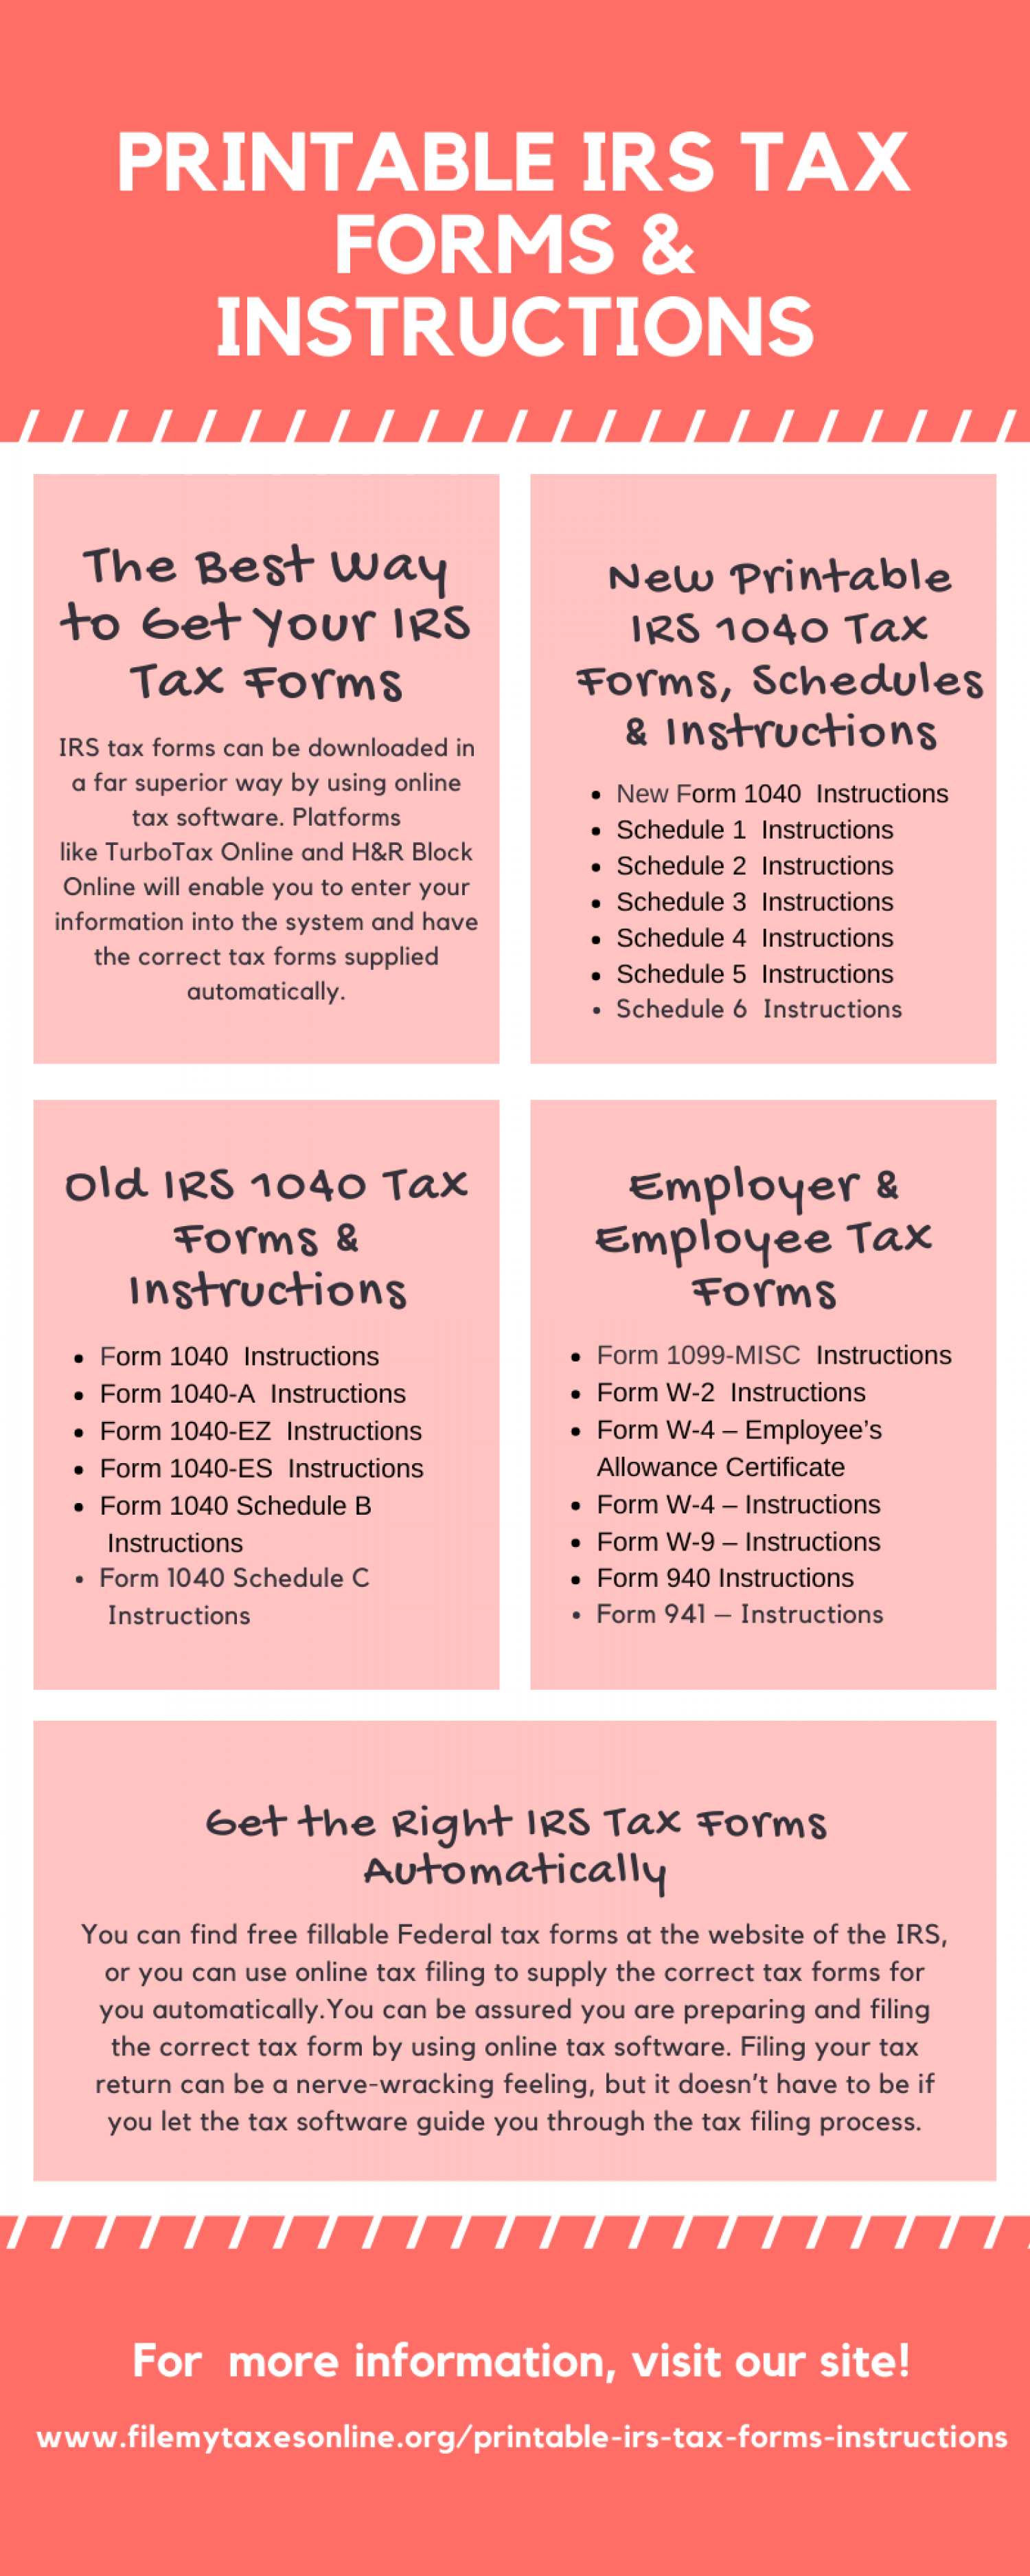 Where to Get Printable IRS Tax Forms & Instructions Infographic